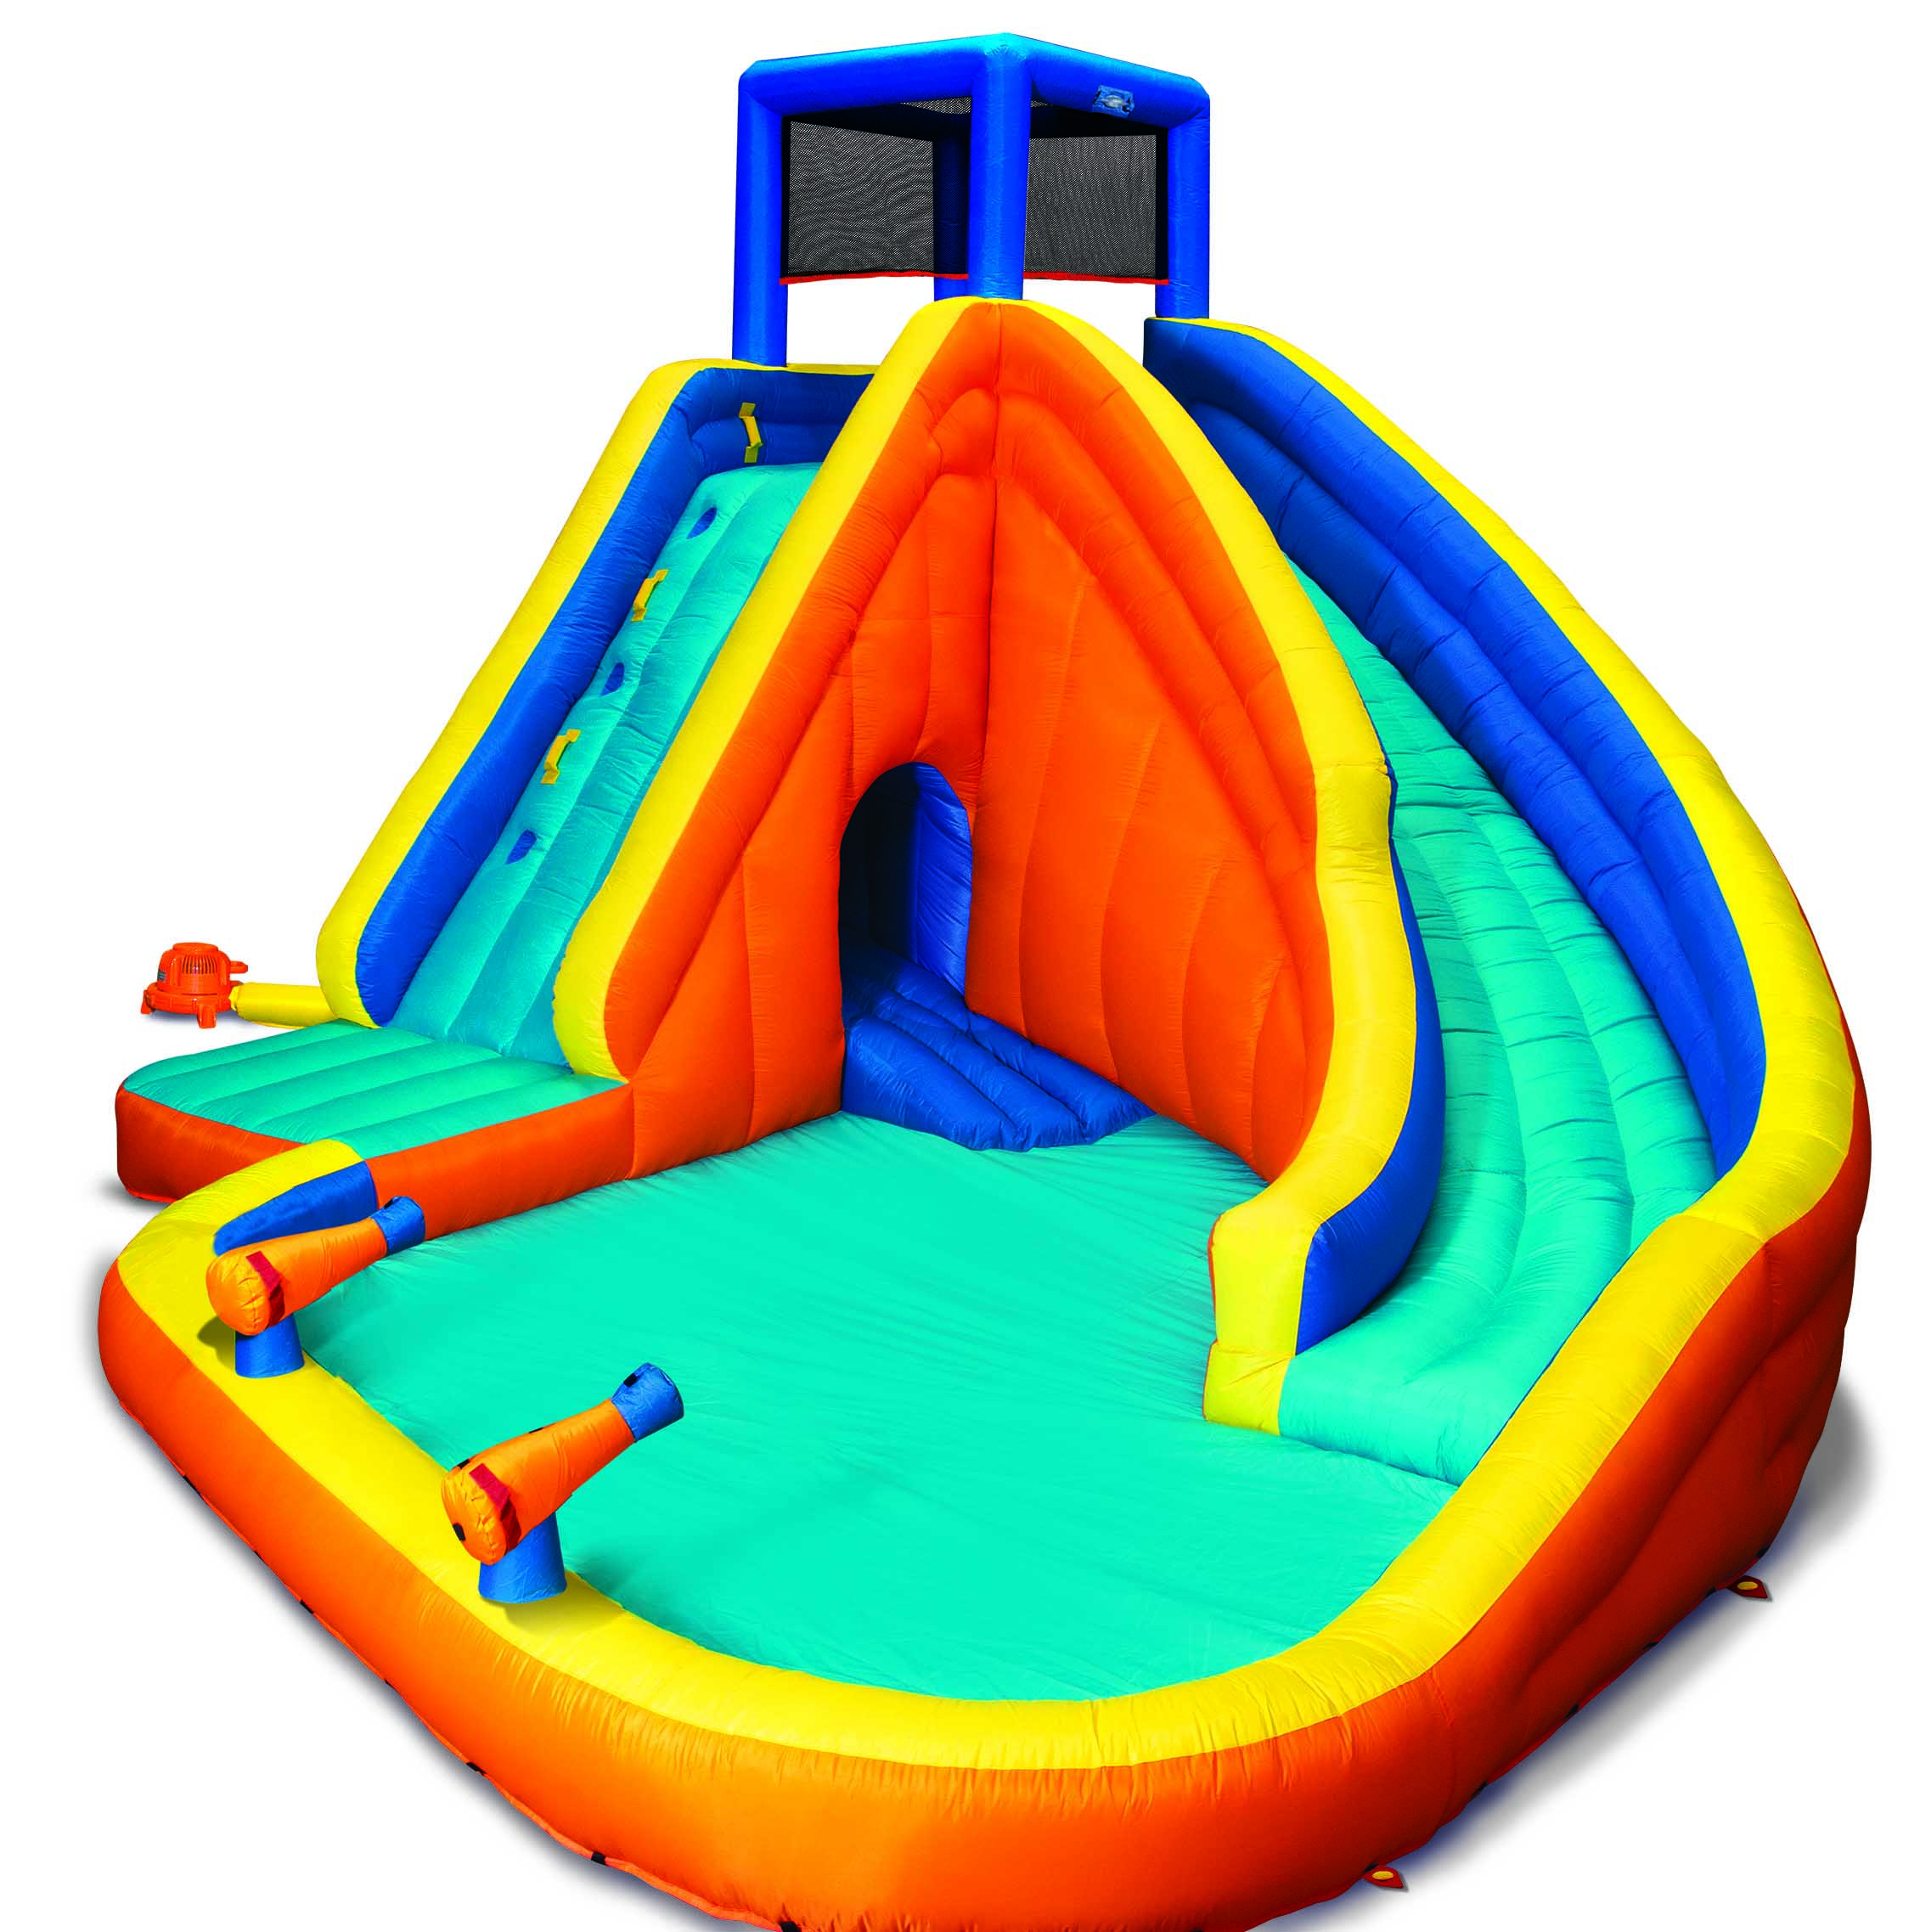 Banzai Sidewinder Falls Inflatable Water Park Play Pool Slide with Water Cannons (Walmart)